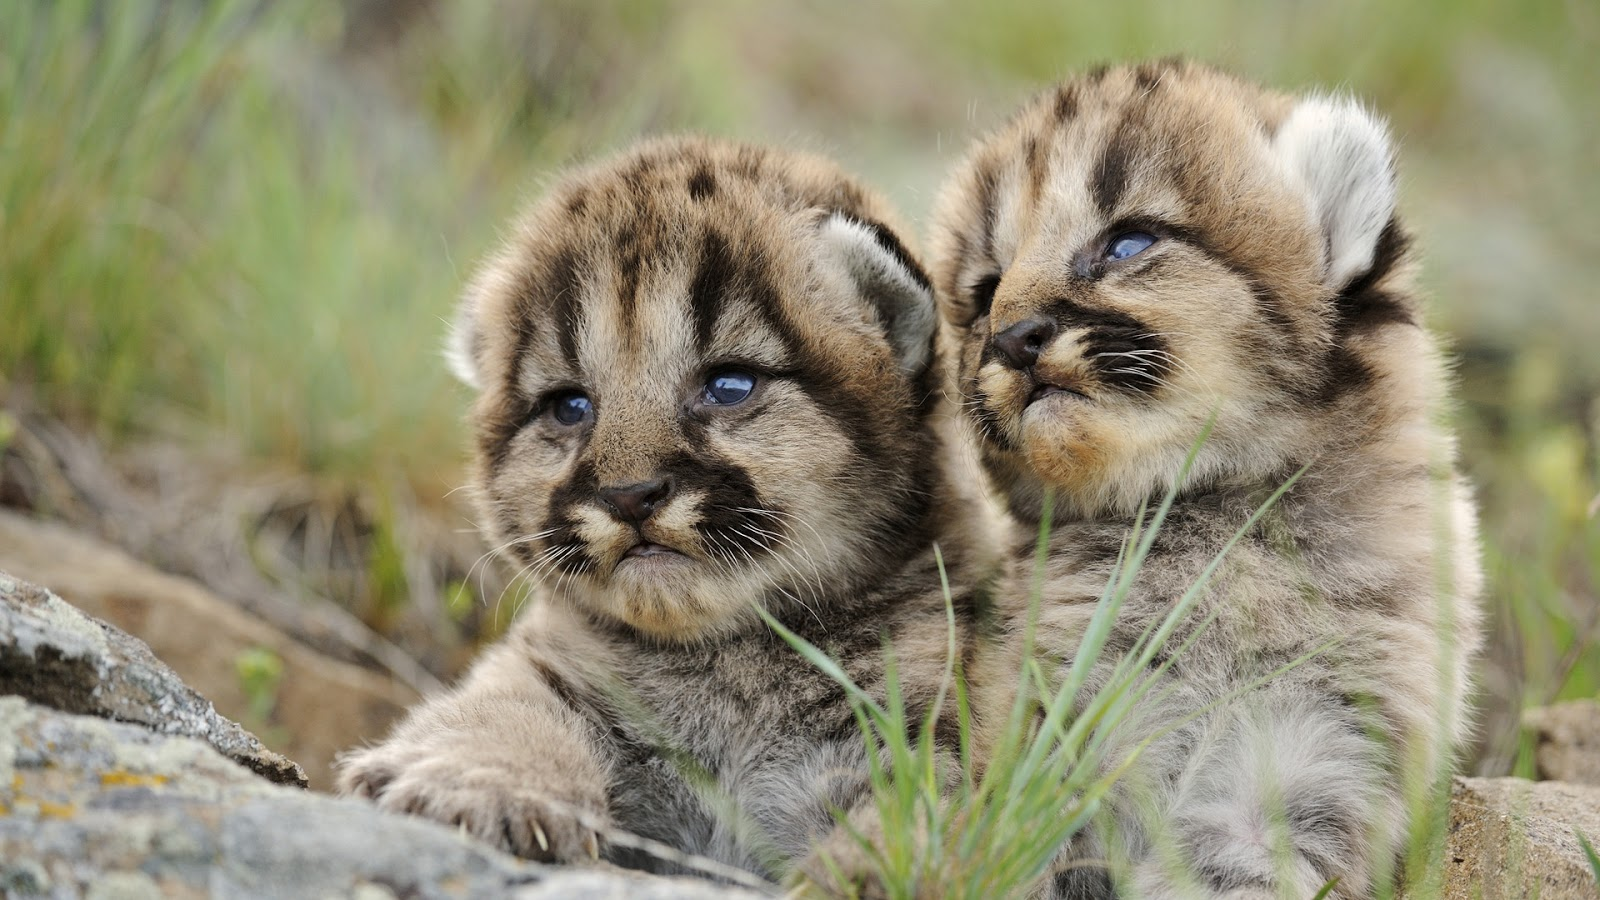 Cute Leopard Cubs ~ Mystery Wallpaper